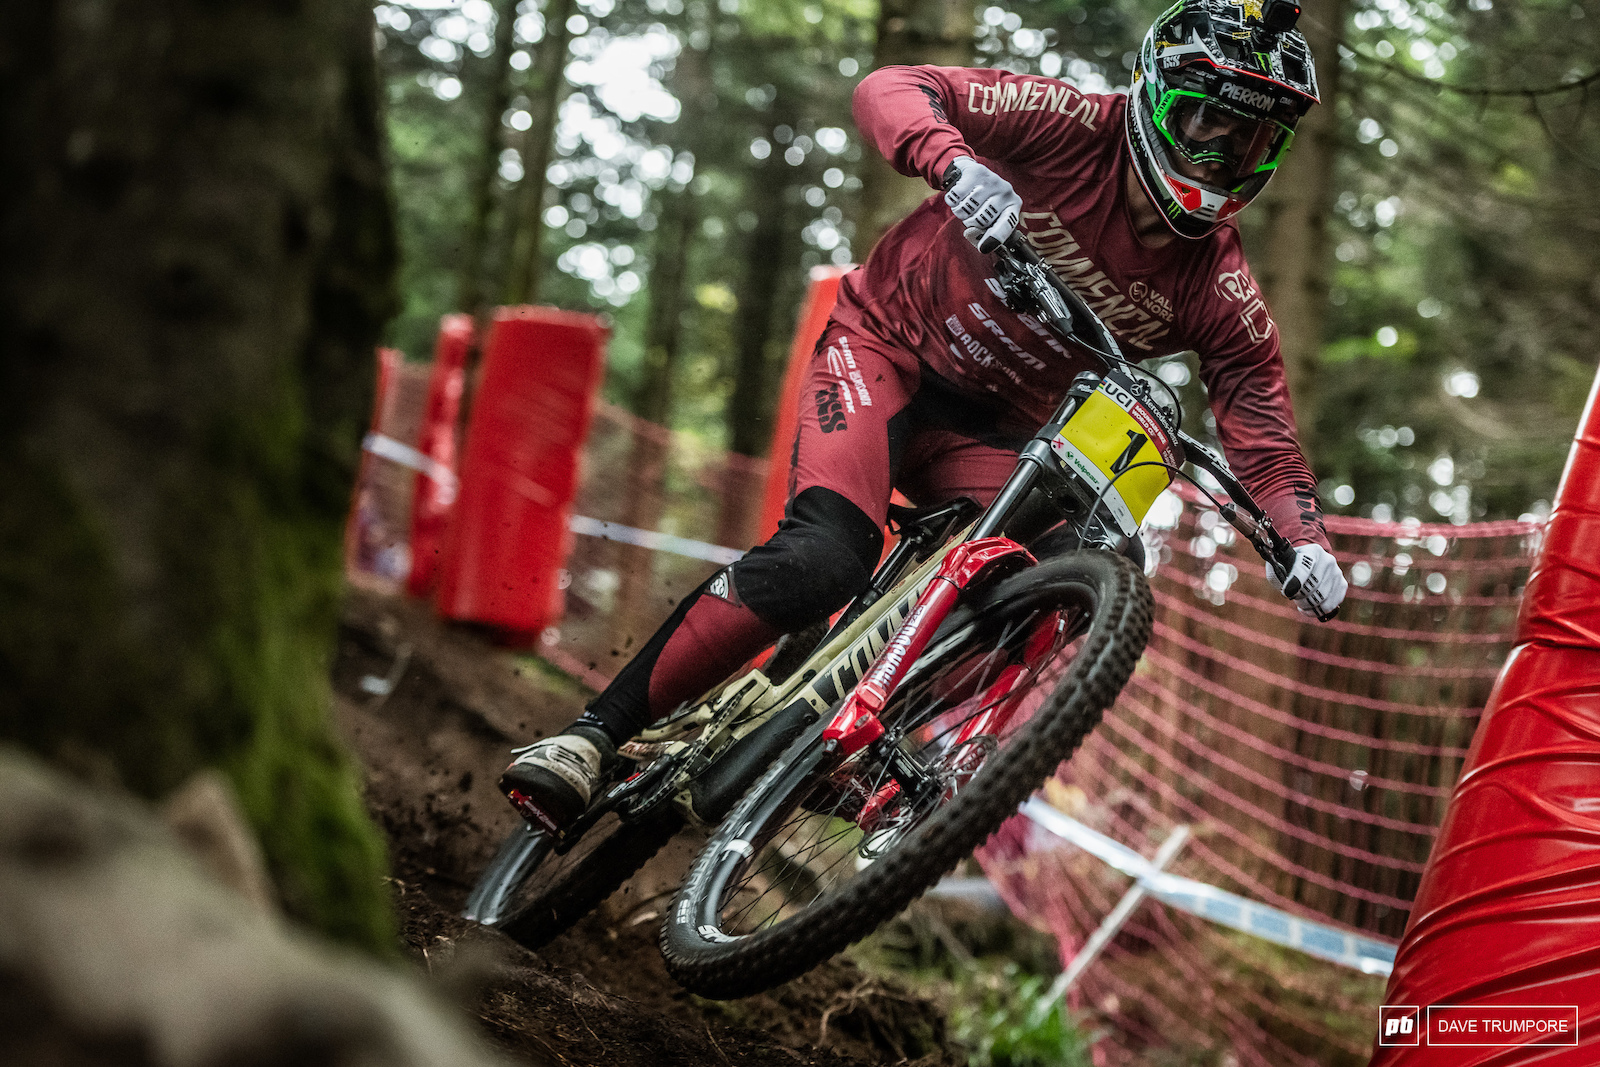 Even in the slippery morning mud Amaury Pierron seemed to be riding with a level of confidence well above anyone else. Smooth Aggressive and fast he looked like the one to beat.